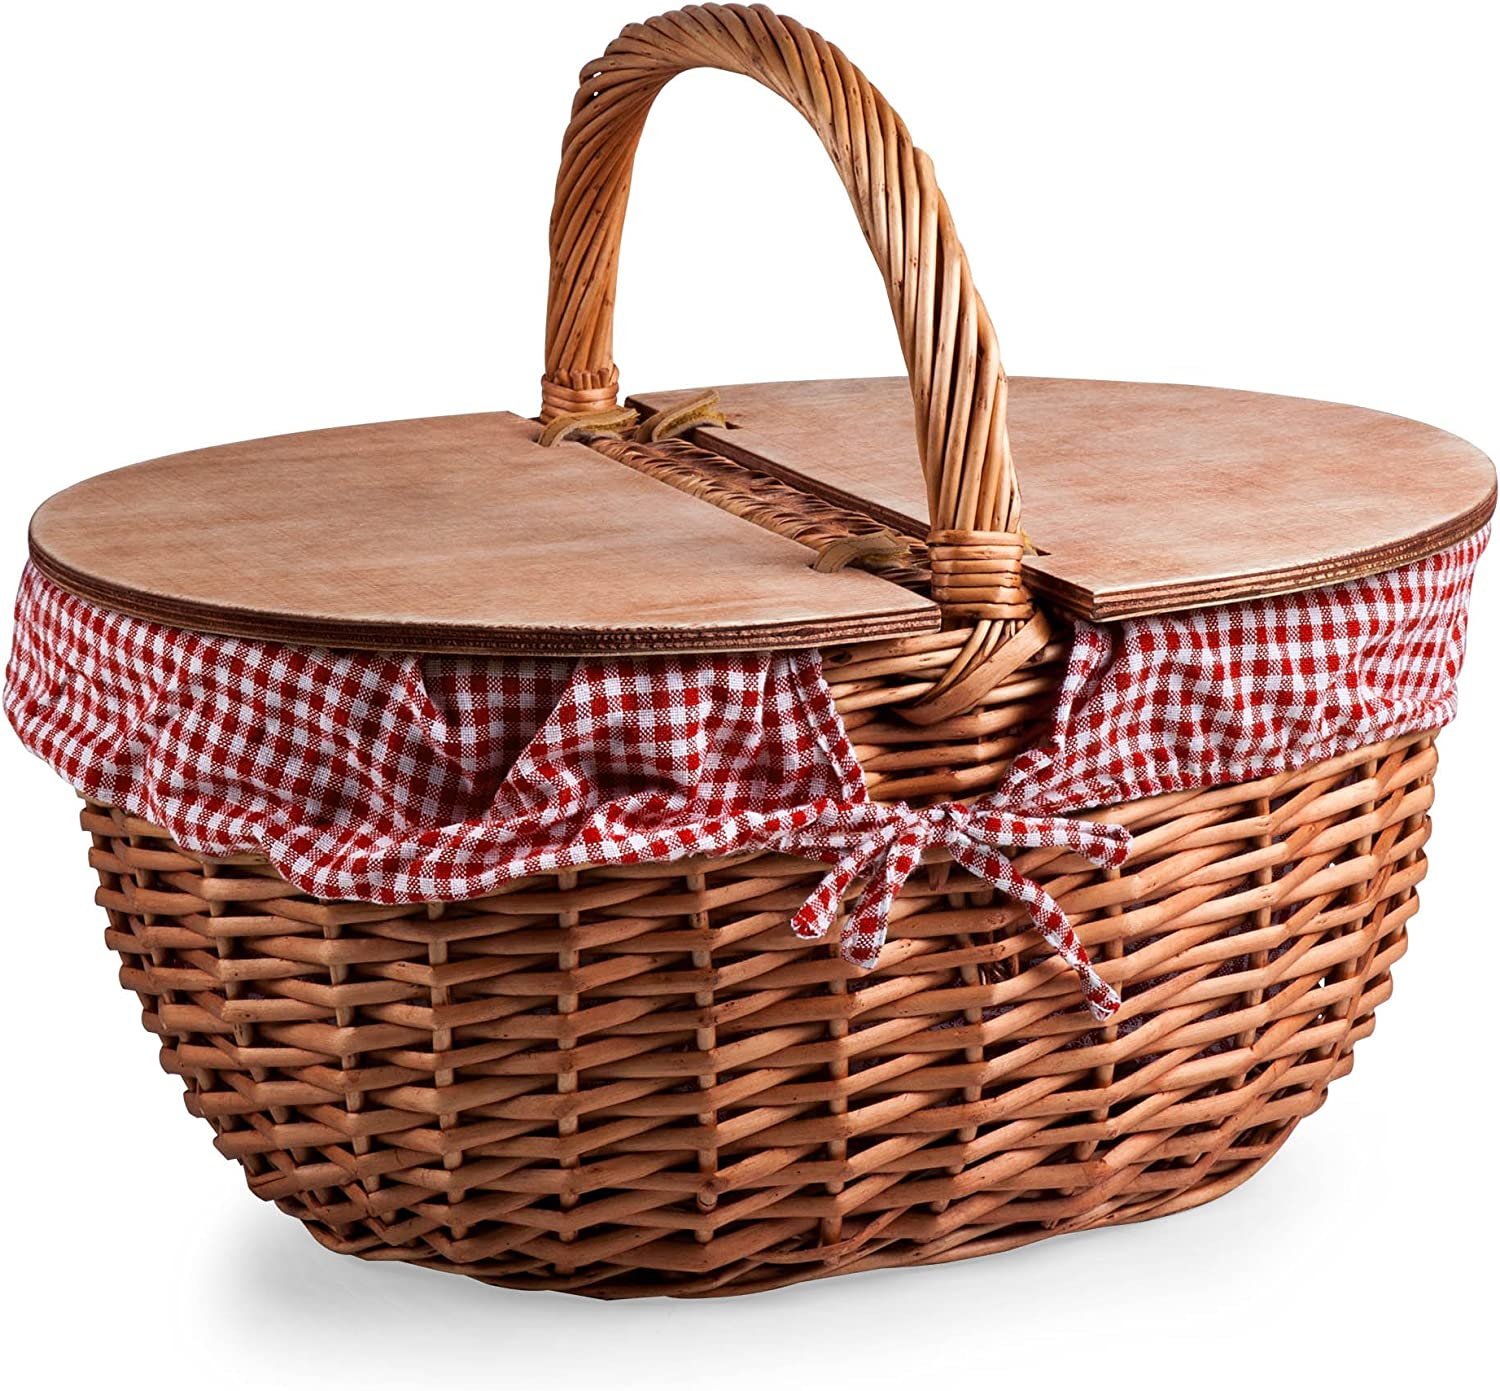 Amazon Com Picnic Time Country Picnic Basket With Liner Red White Gingham Kitchen Dining